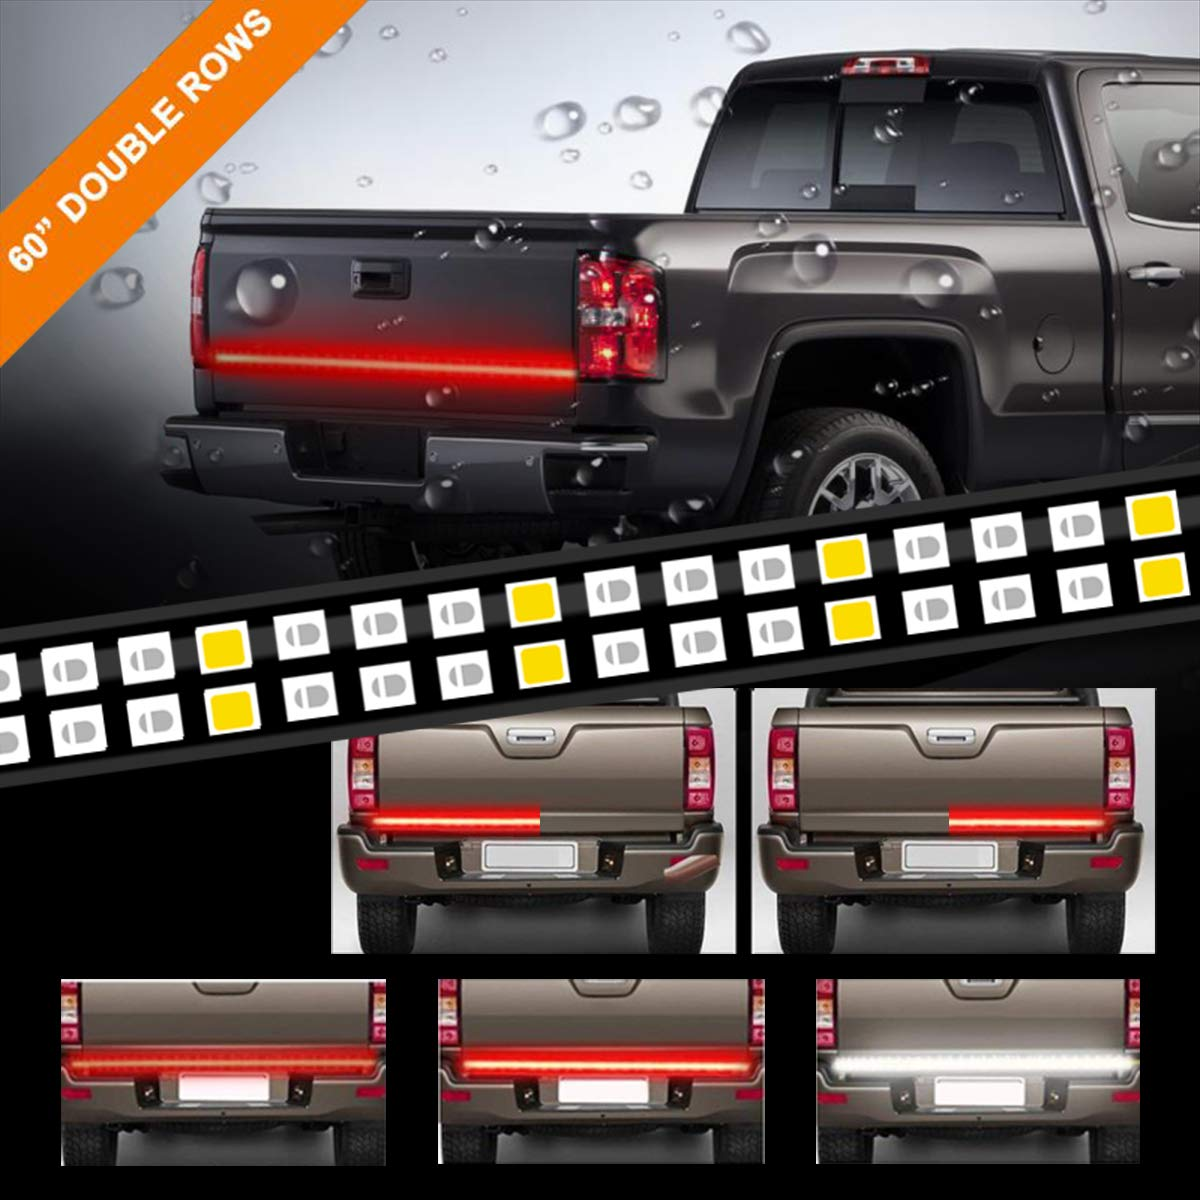 LPENG 60'' double Rows LED Truck Tailgate Light Bar Strip Red/White Reverse Brake Stop Turn Signal Parking Running  Weatherproof No-Drill Installation Universal truck car SUV LEE CO. LTD